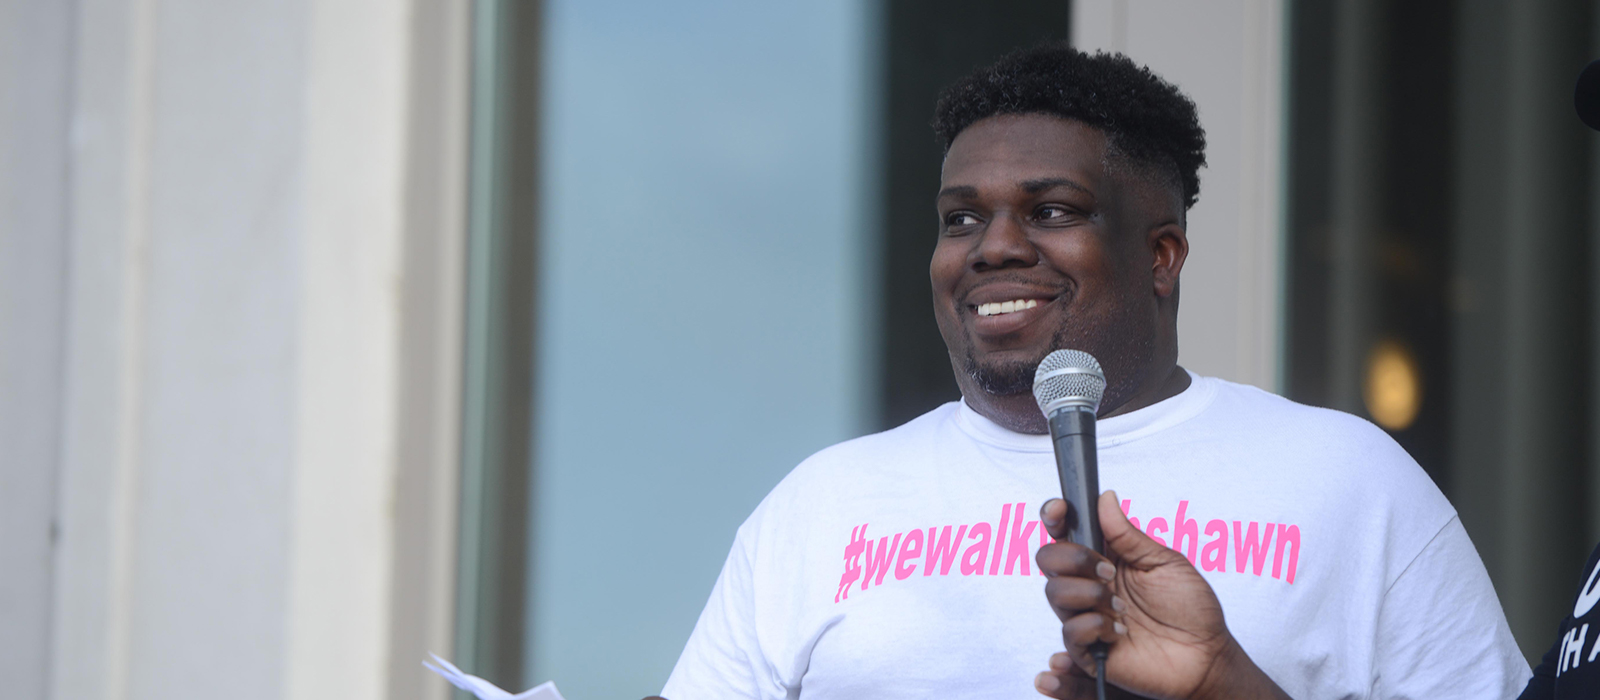 Shawn Dromgoole speaks at the Edgehill Black History Tour starting at Belmont University and walking around the Edgehill neighborhood in support of We Walk with Shawn in Nashville, Tennessee, June 27, 2020